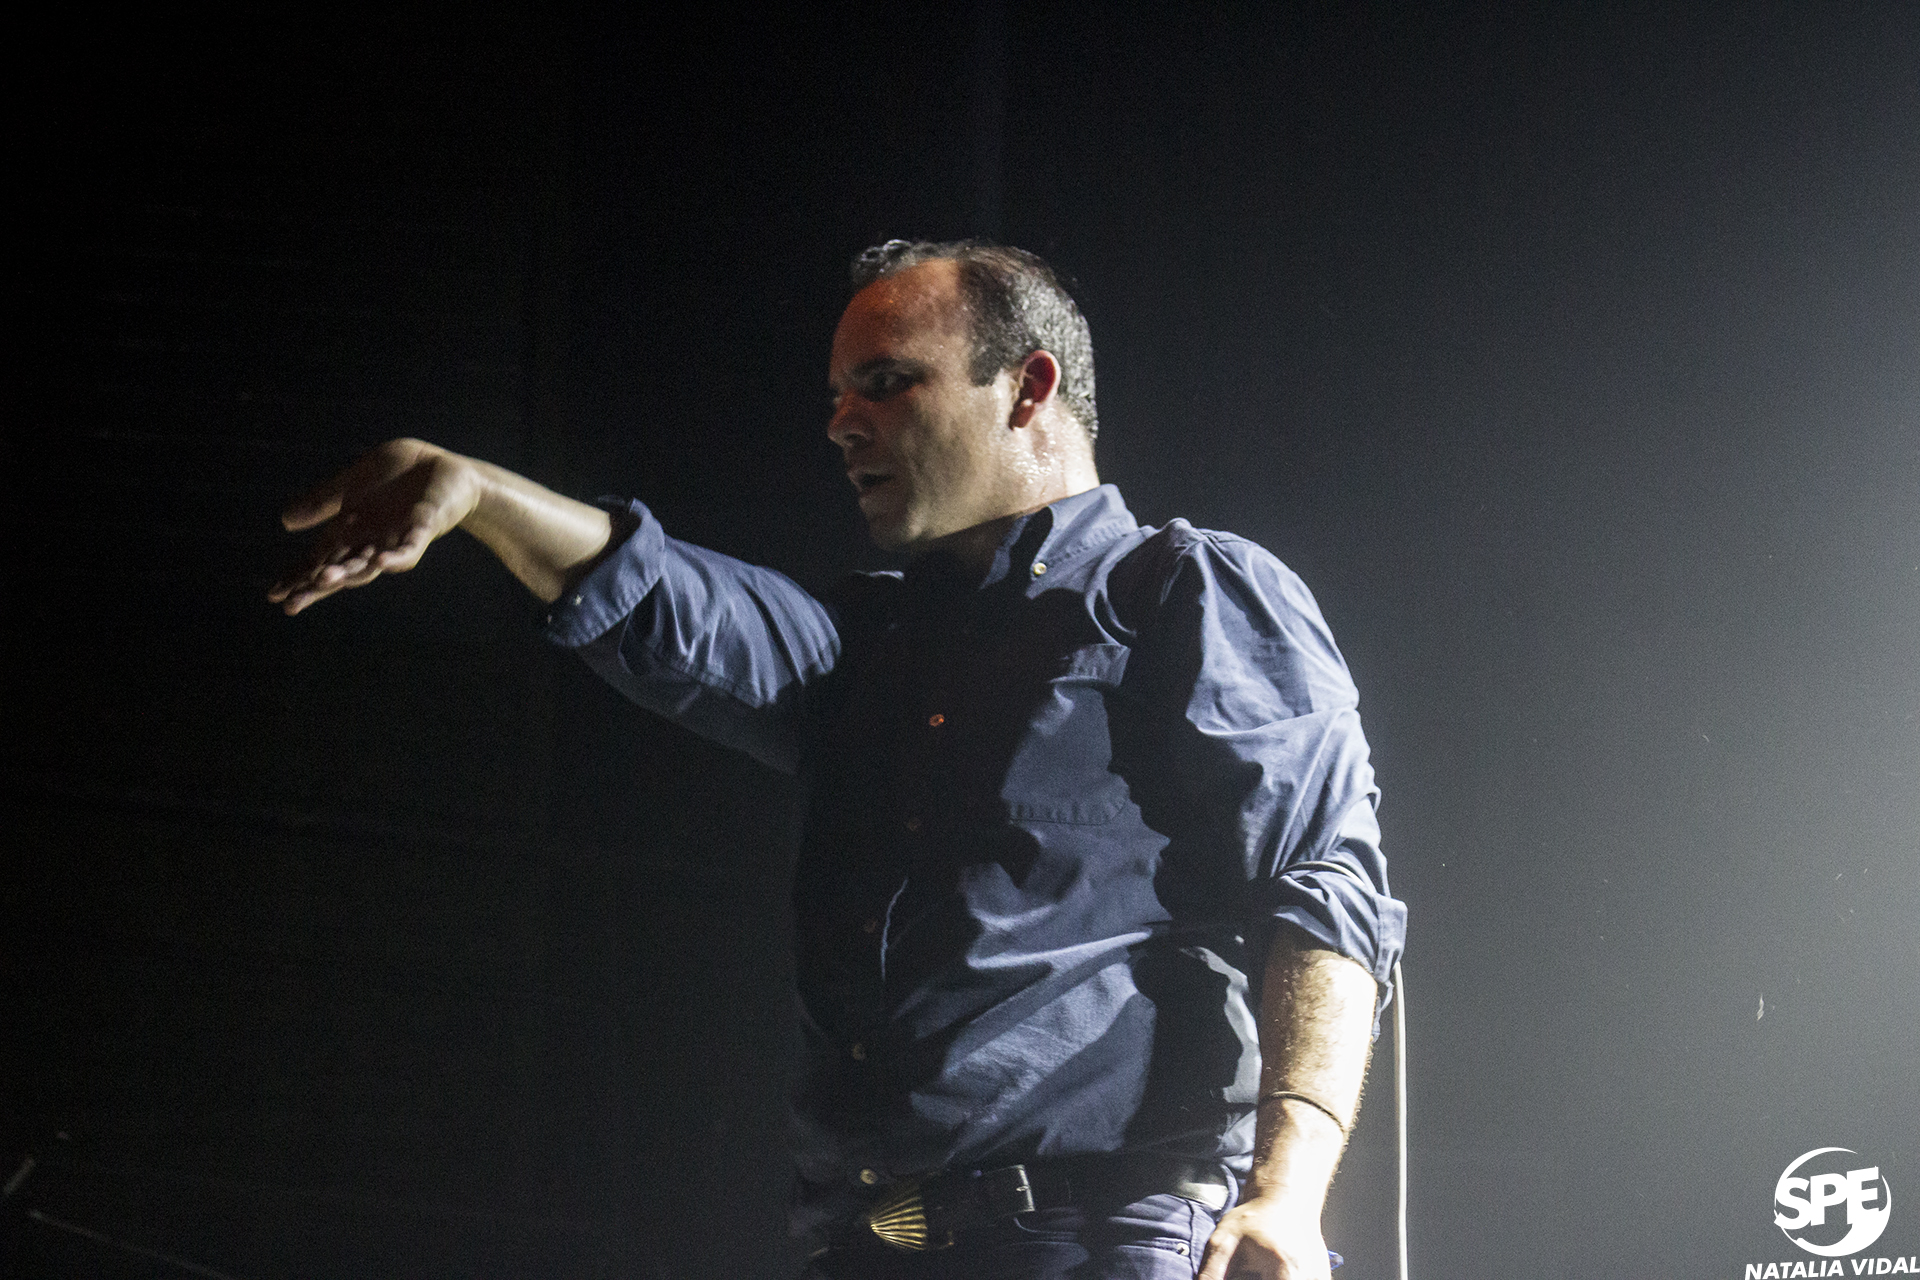 Future-Islands-Walkman-Vol1-Niceto-09-05-18-Natalia-Vidal-Solo-Para-Entendidos_684.jpg